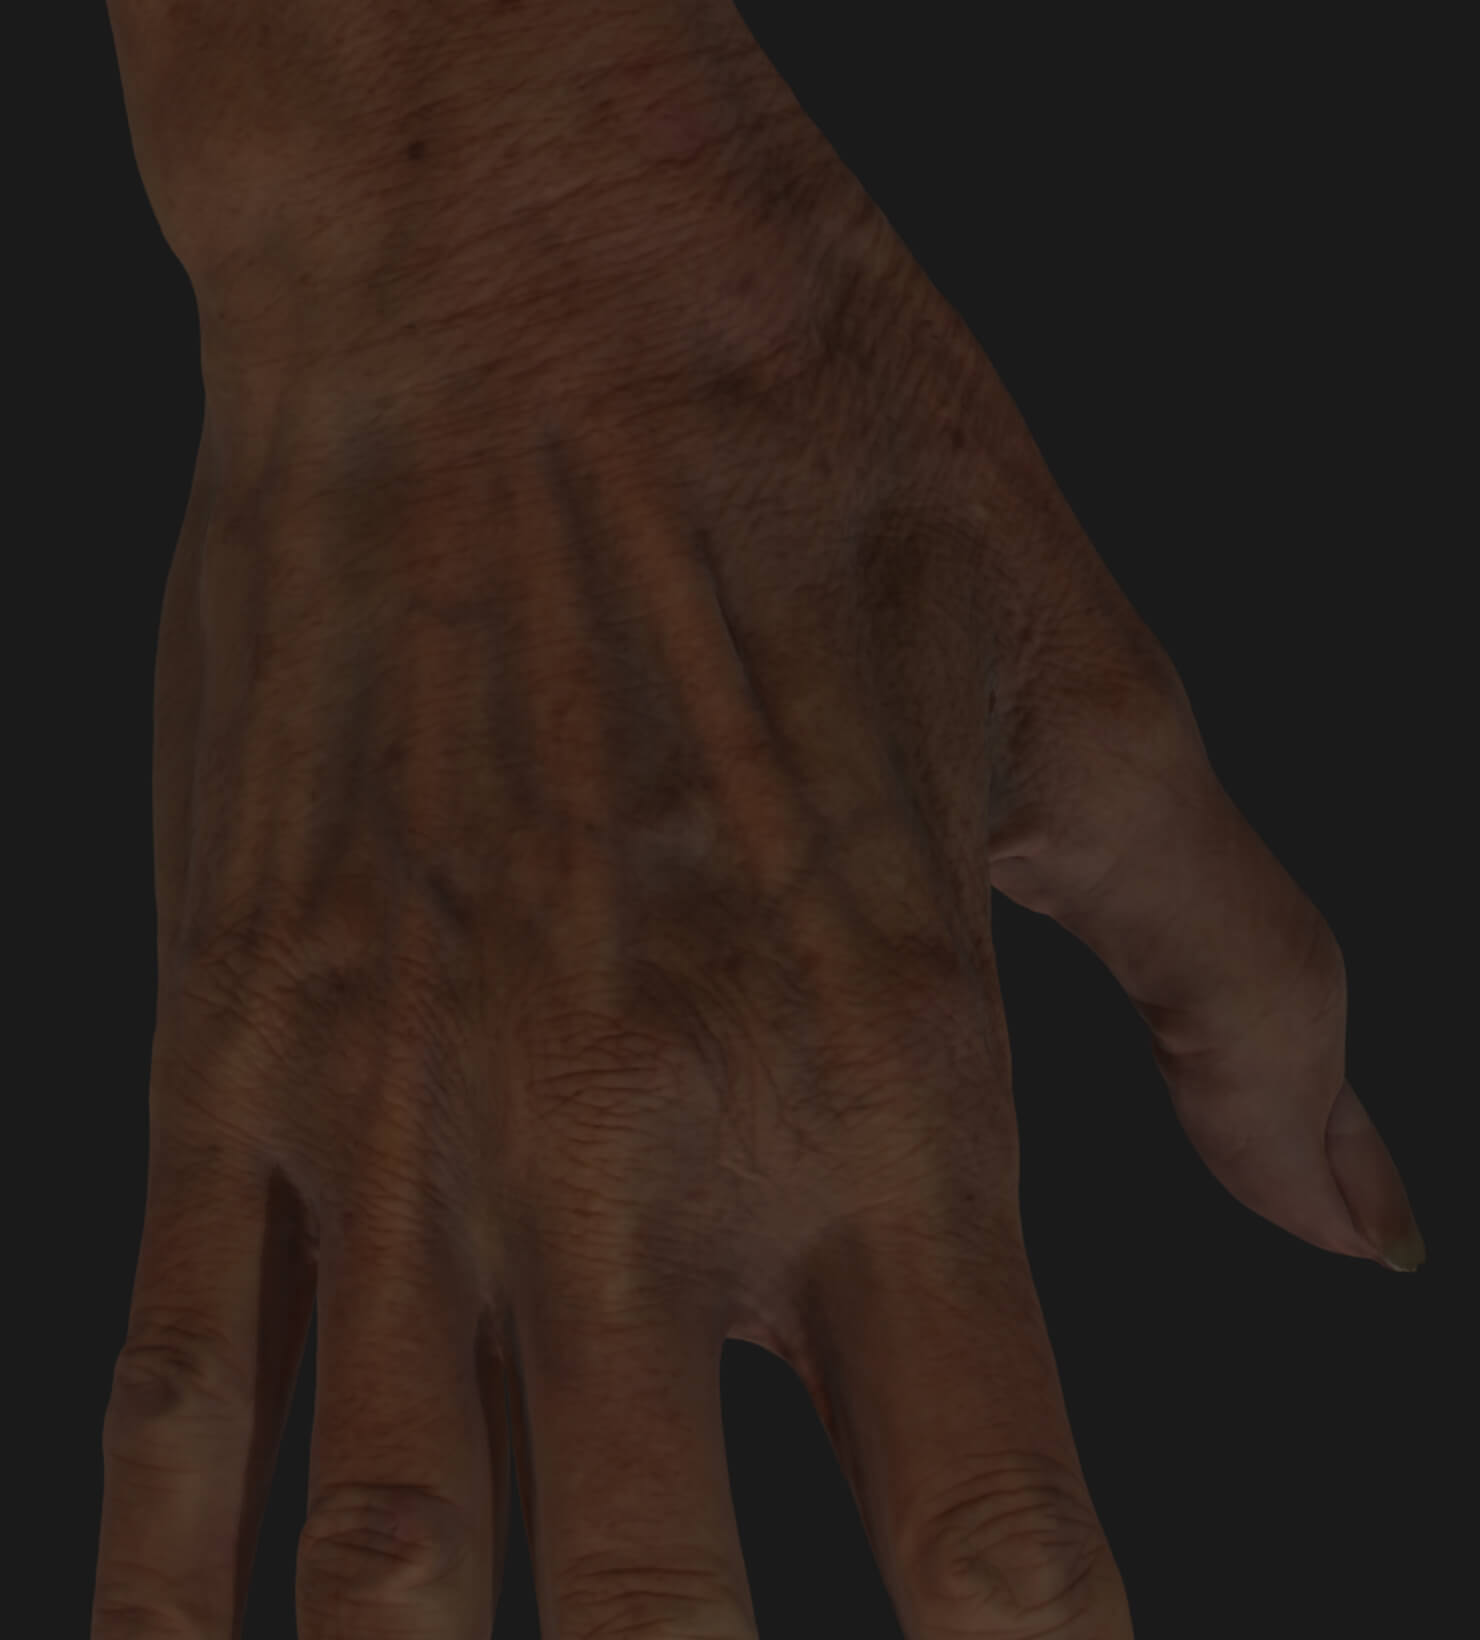 Clinique Chloé female patient's aging hand to be treated with Radiesse injections